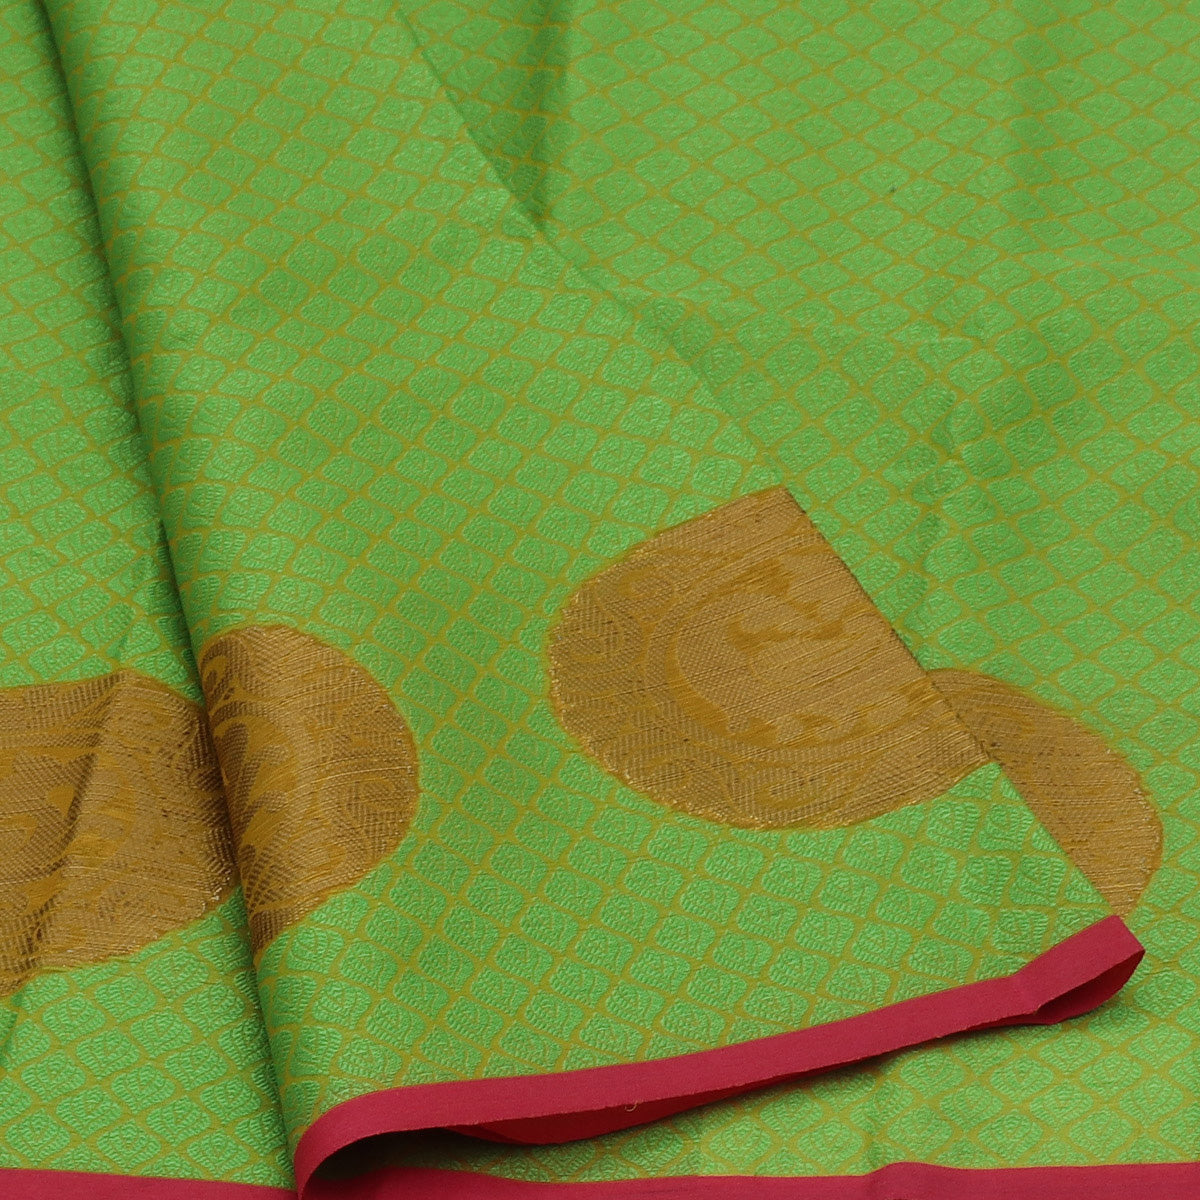 Banarasi Kora Muslin Saree Light Green with Annam Zari Border